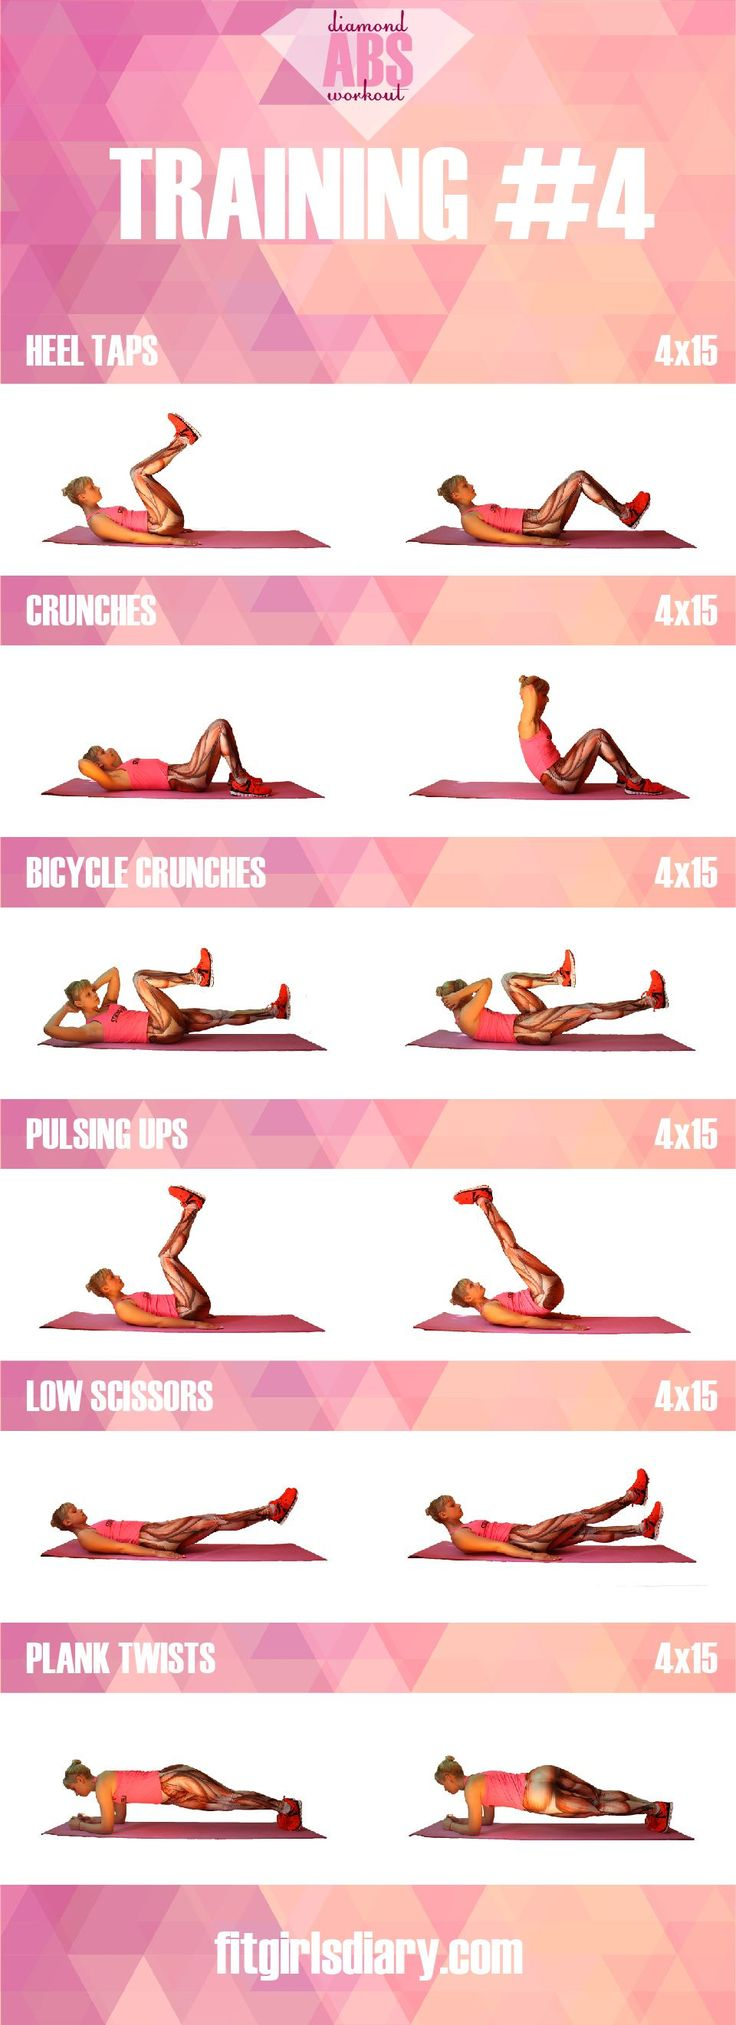 training #4 Diamond Abs Workout - The Best Ab Exercises for Women